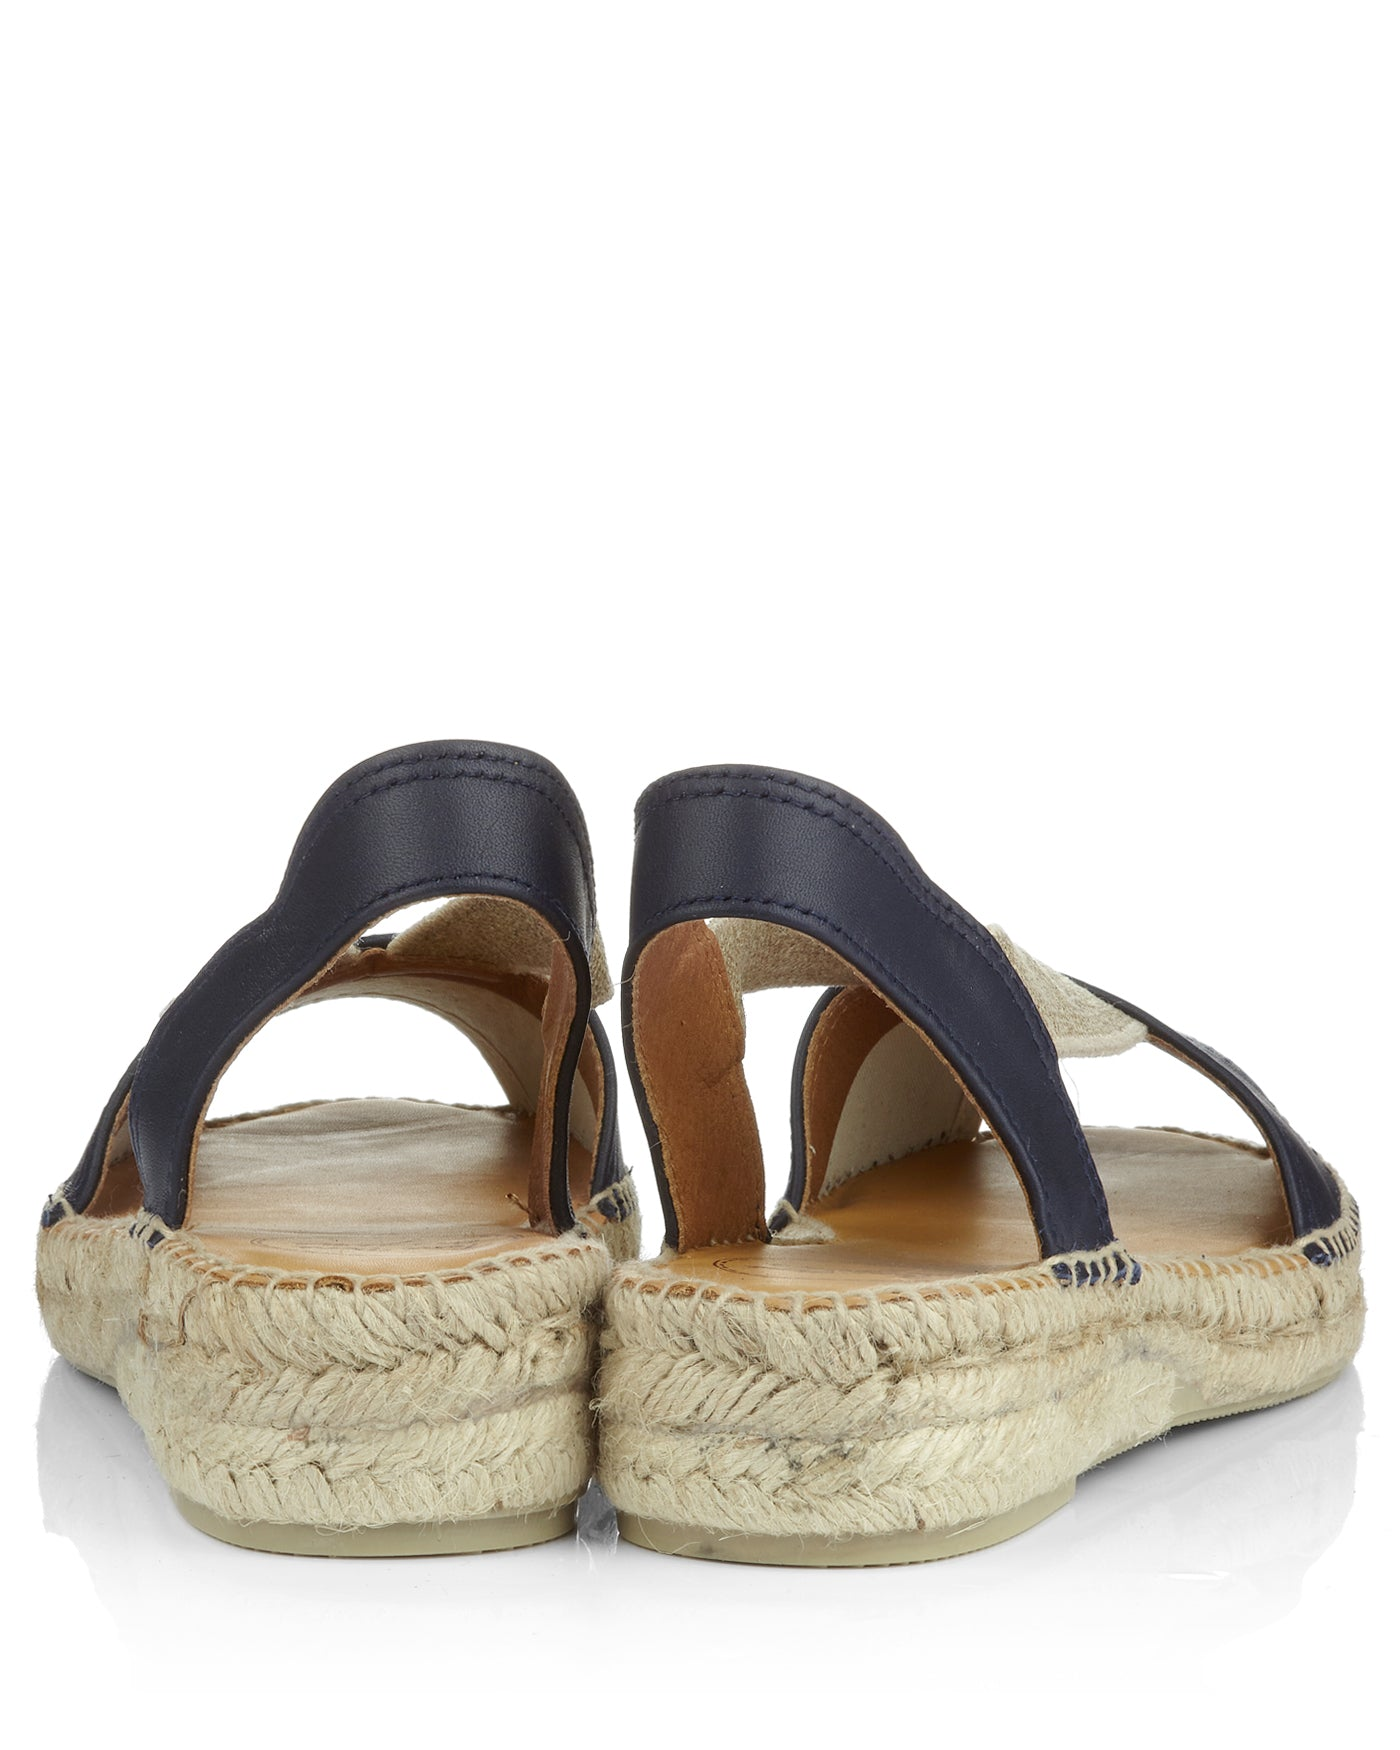 Etna Navy Blue Leather Flat Peeptoe Espadrilles - The Espadrille Hut